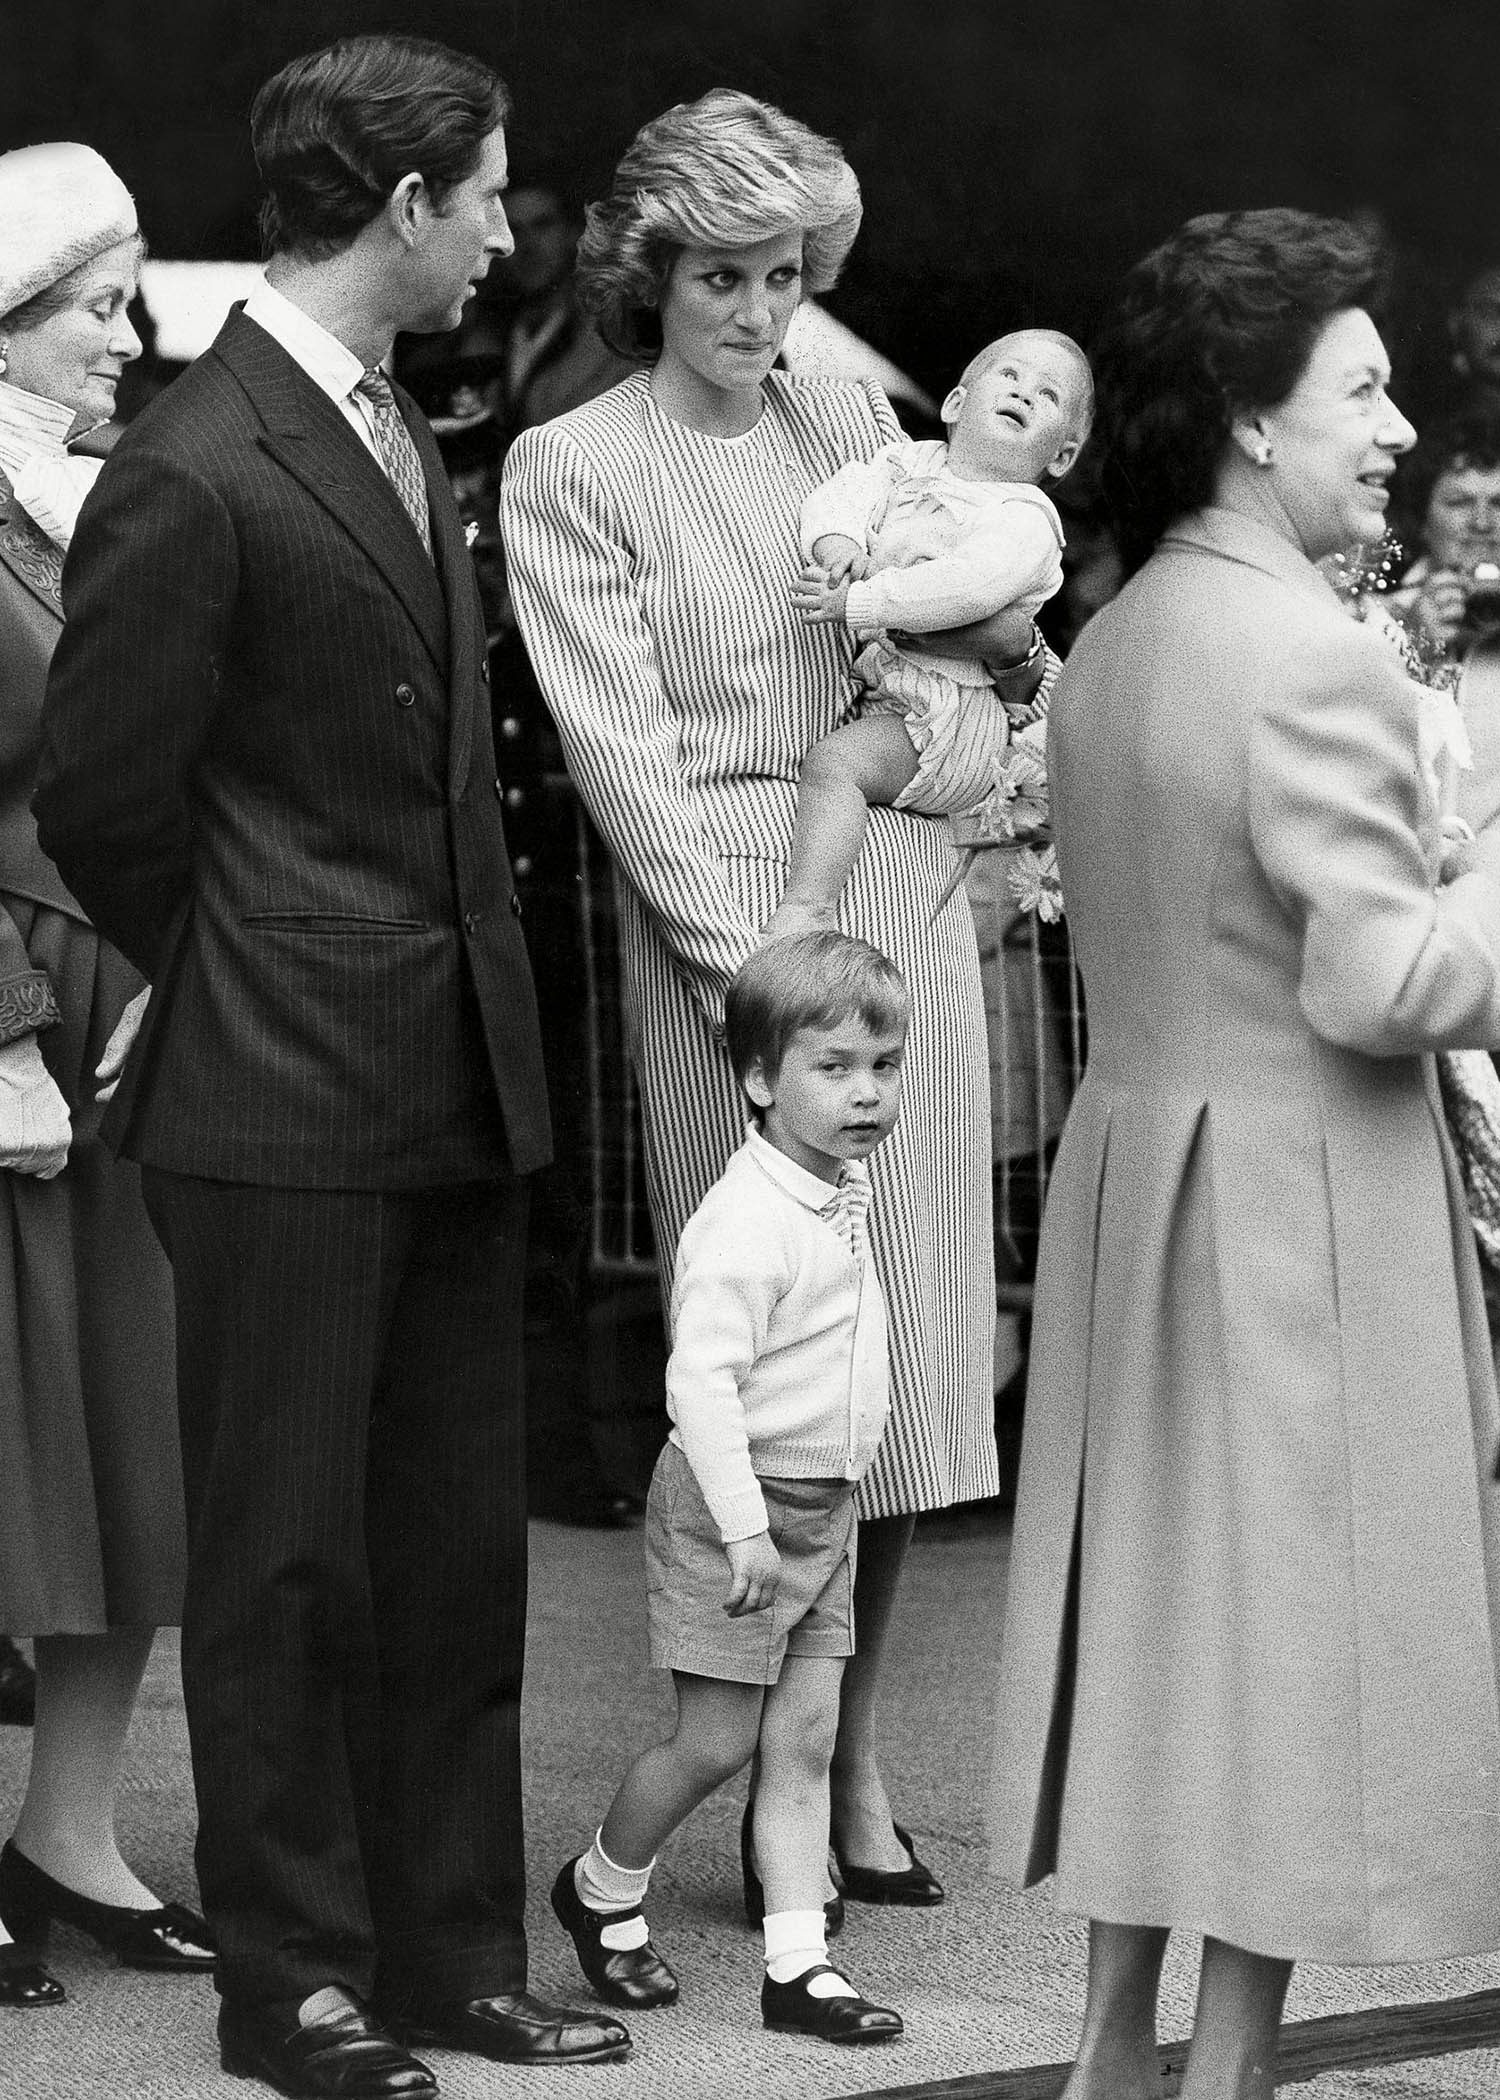 Famille royale : photo de la princesse Margaret et son neveu, le prince de Galles.